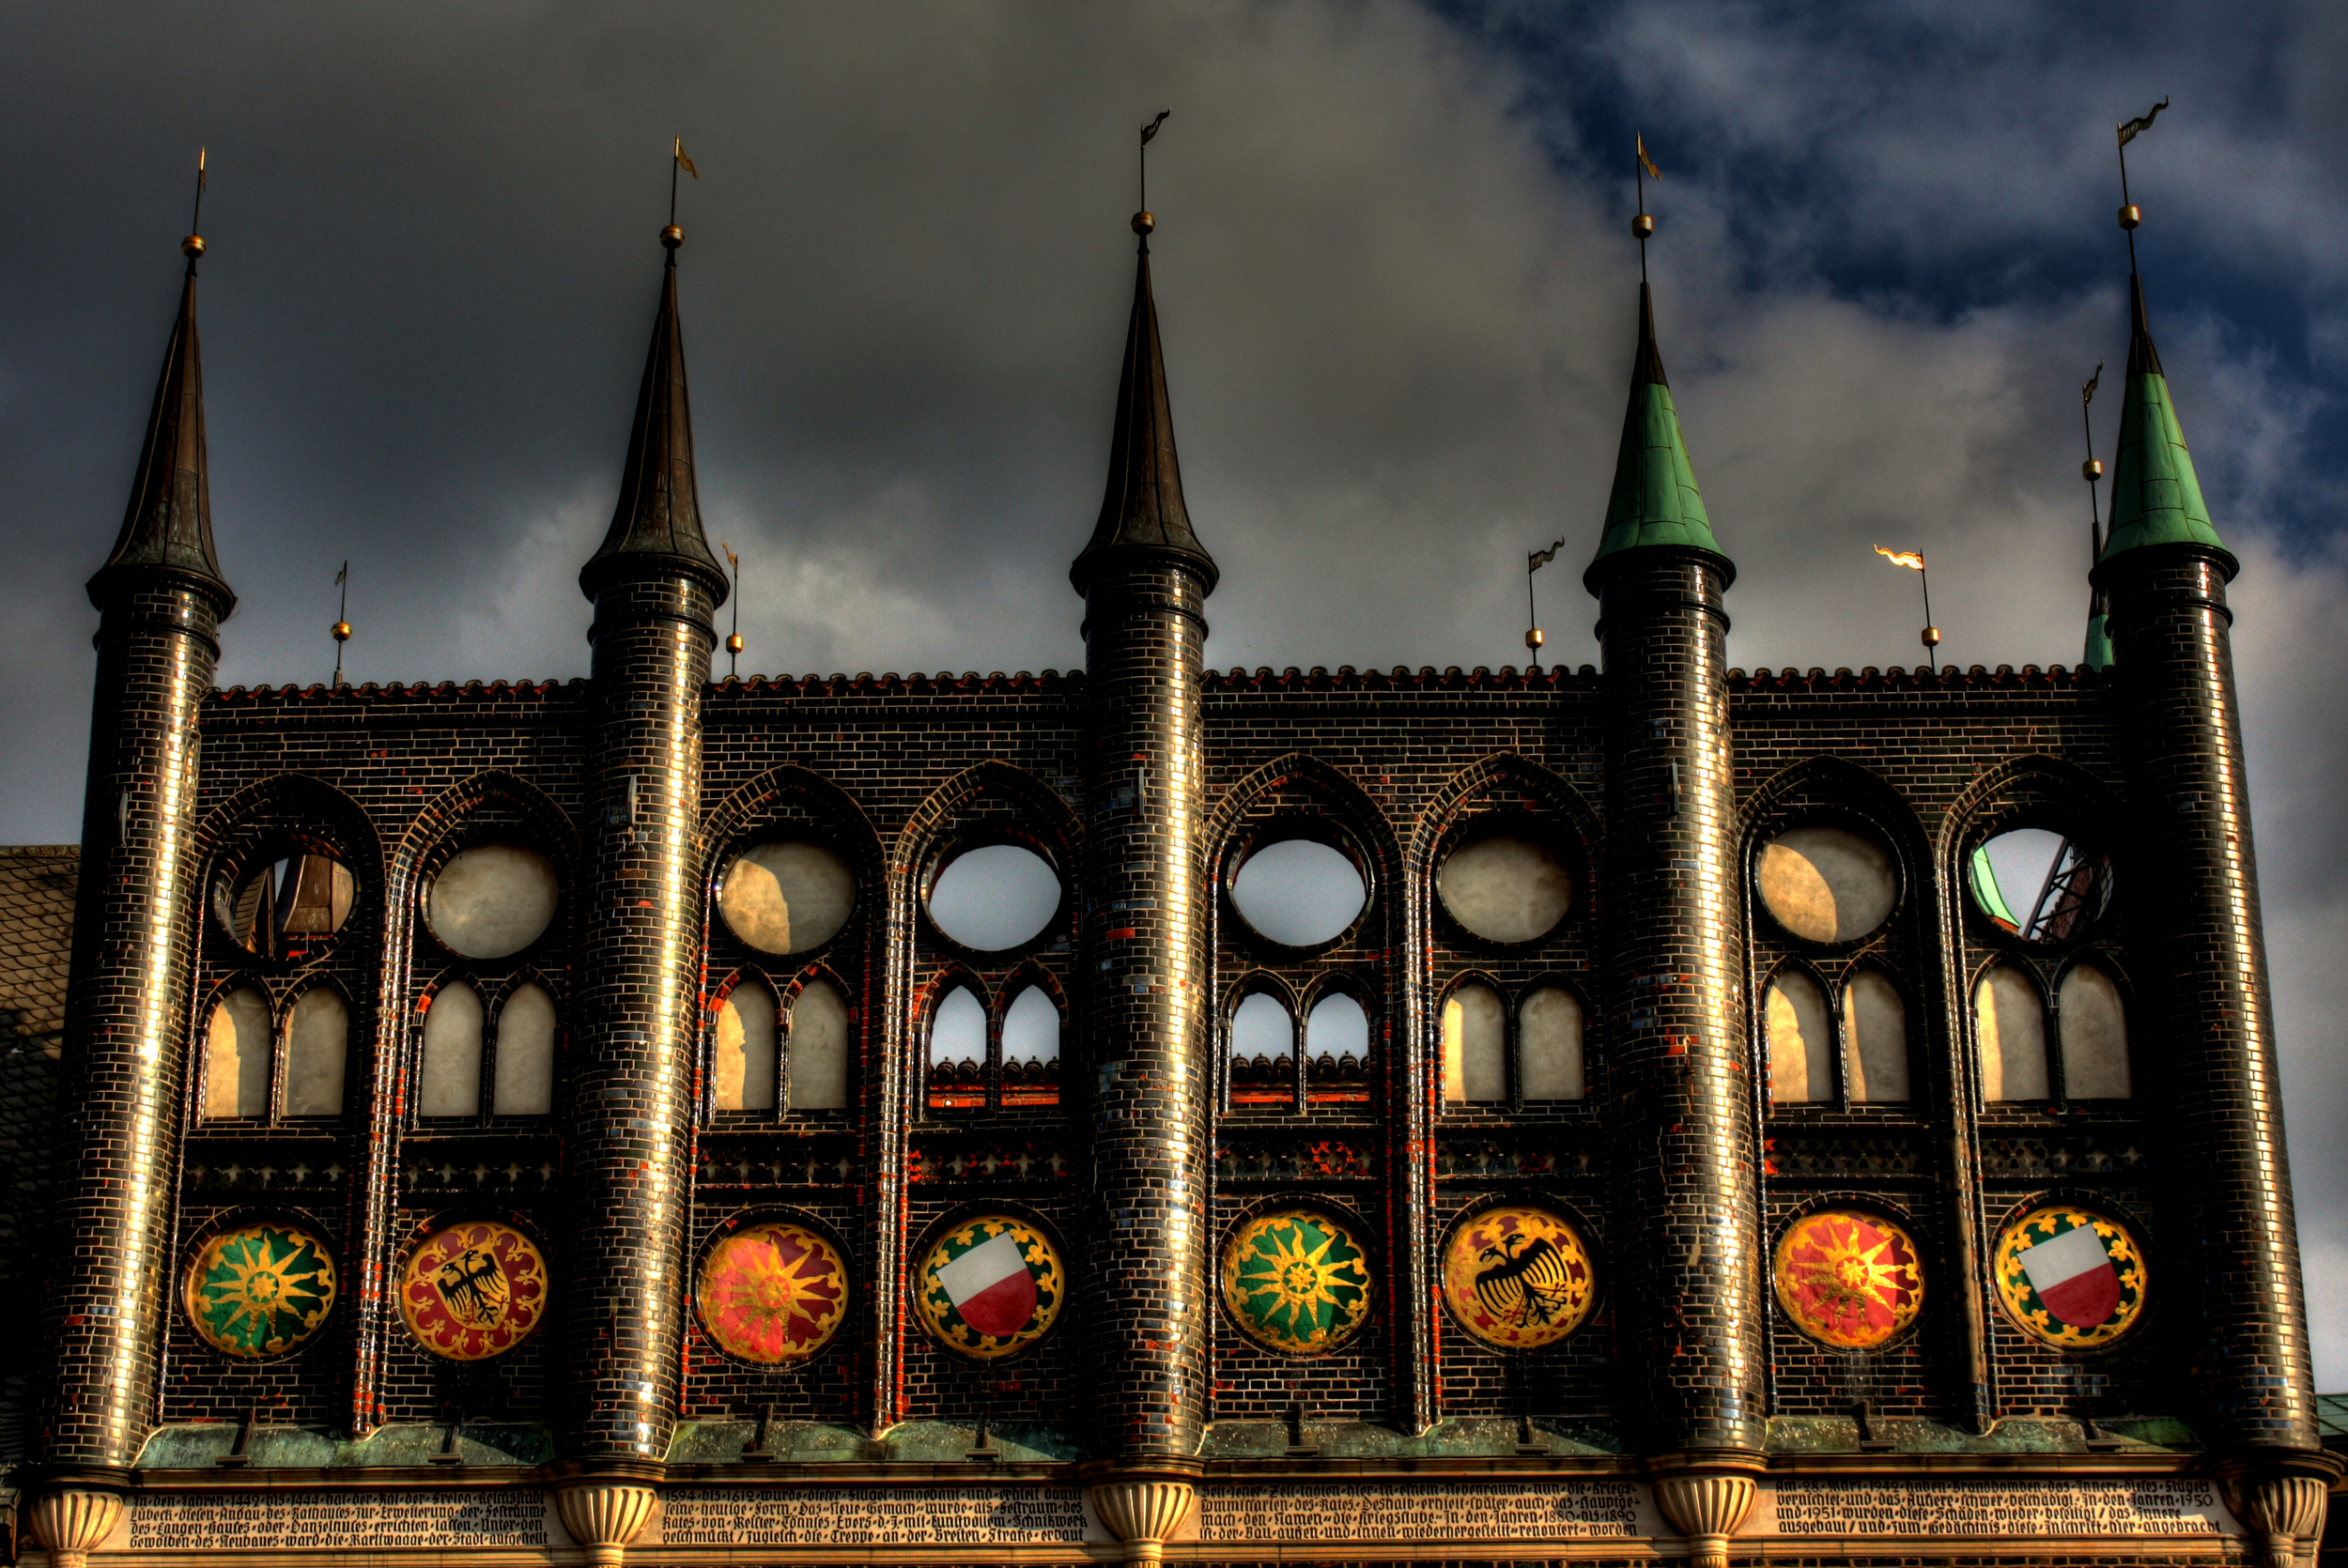 Dramatic HDR image of the towers and shields (photo by Square Eyes)